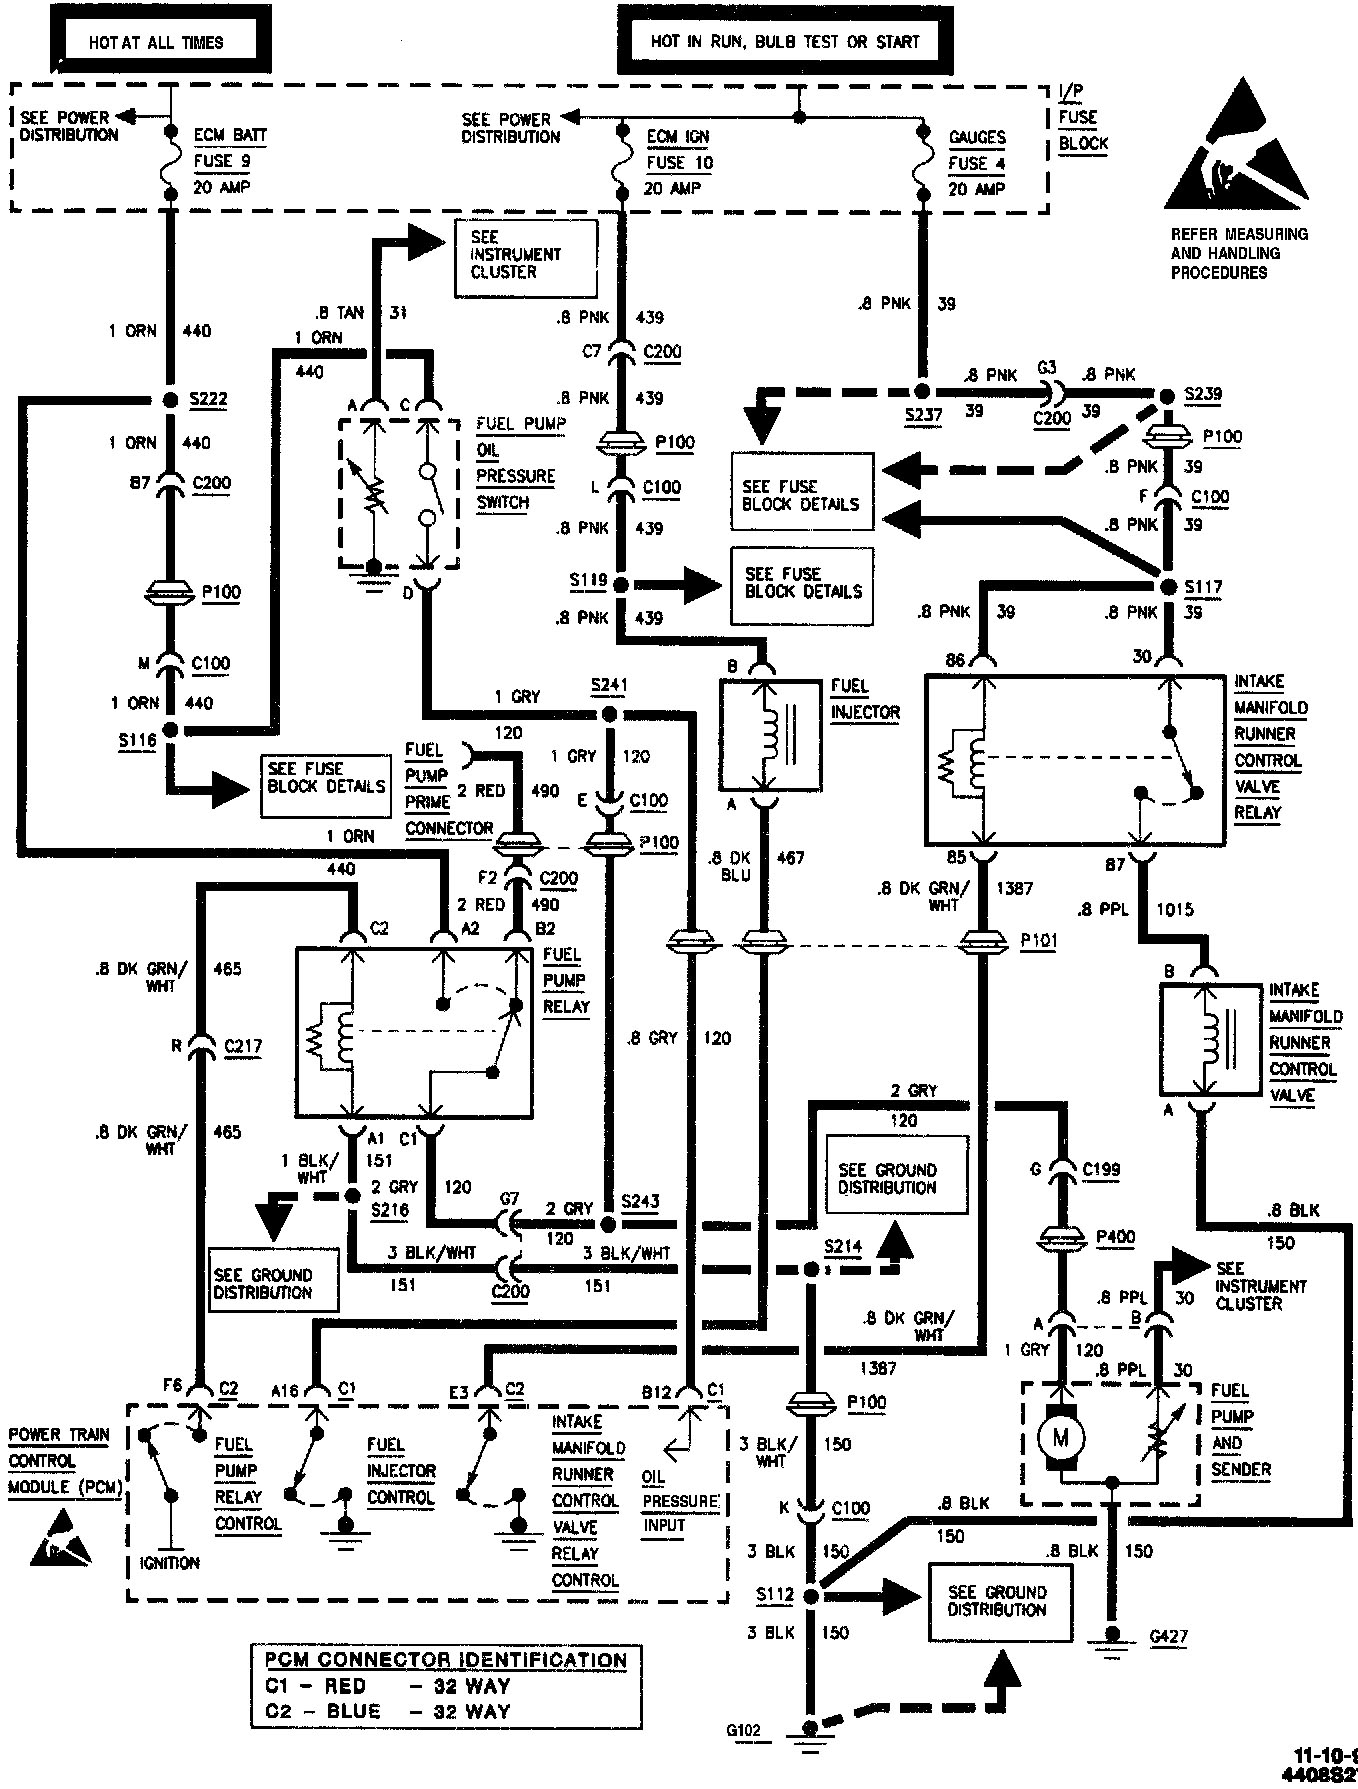 2001 Chevy Blazer Fuel Pump Wiring Diagram